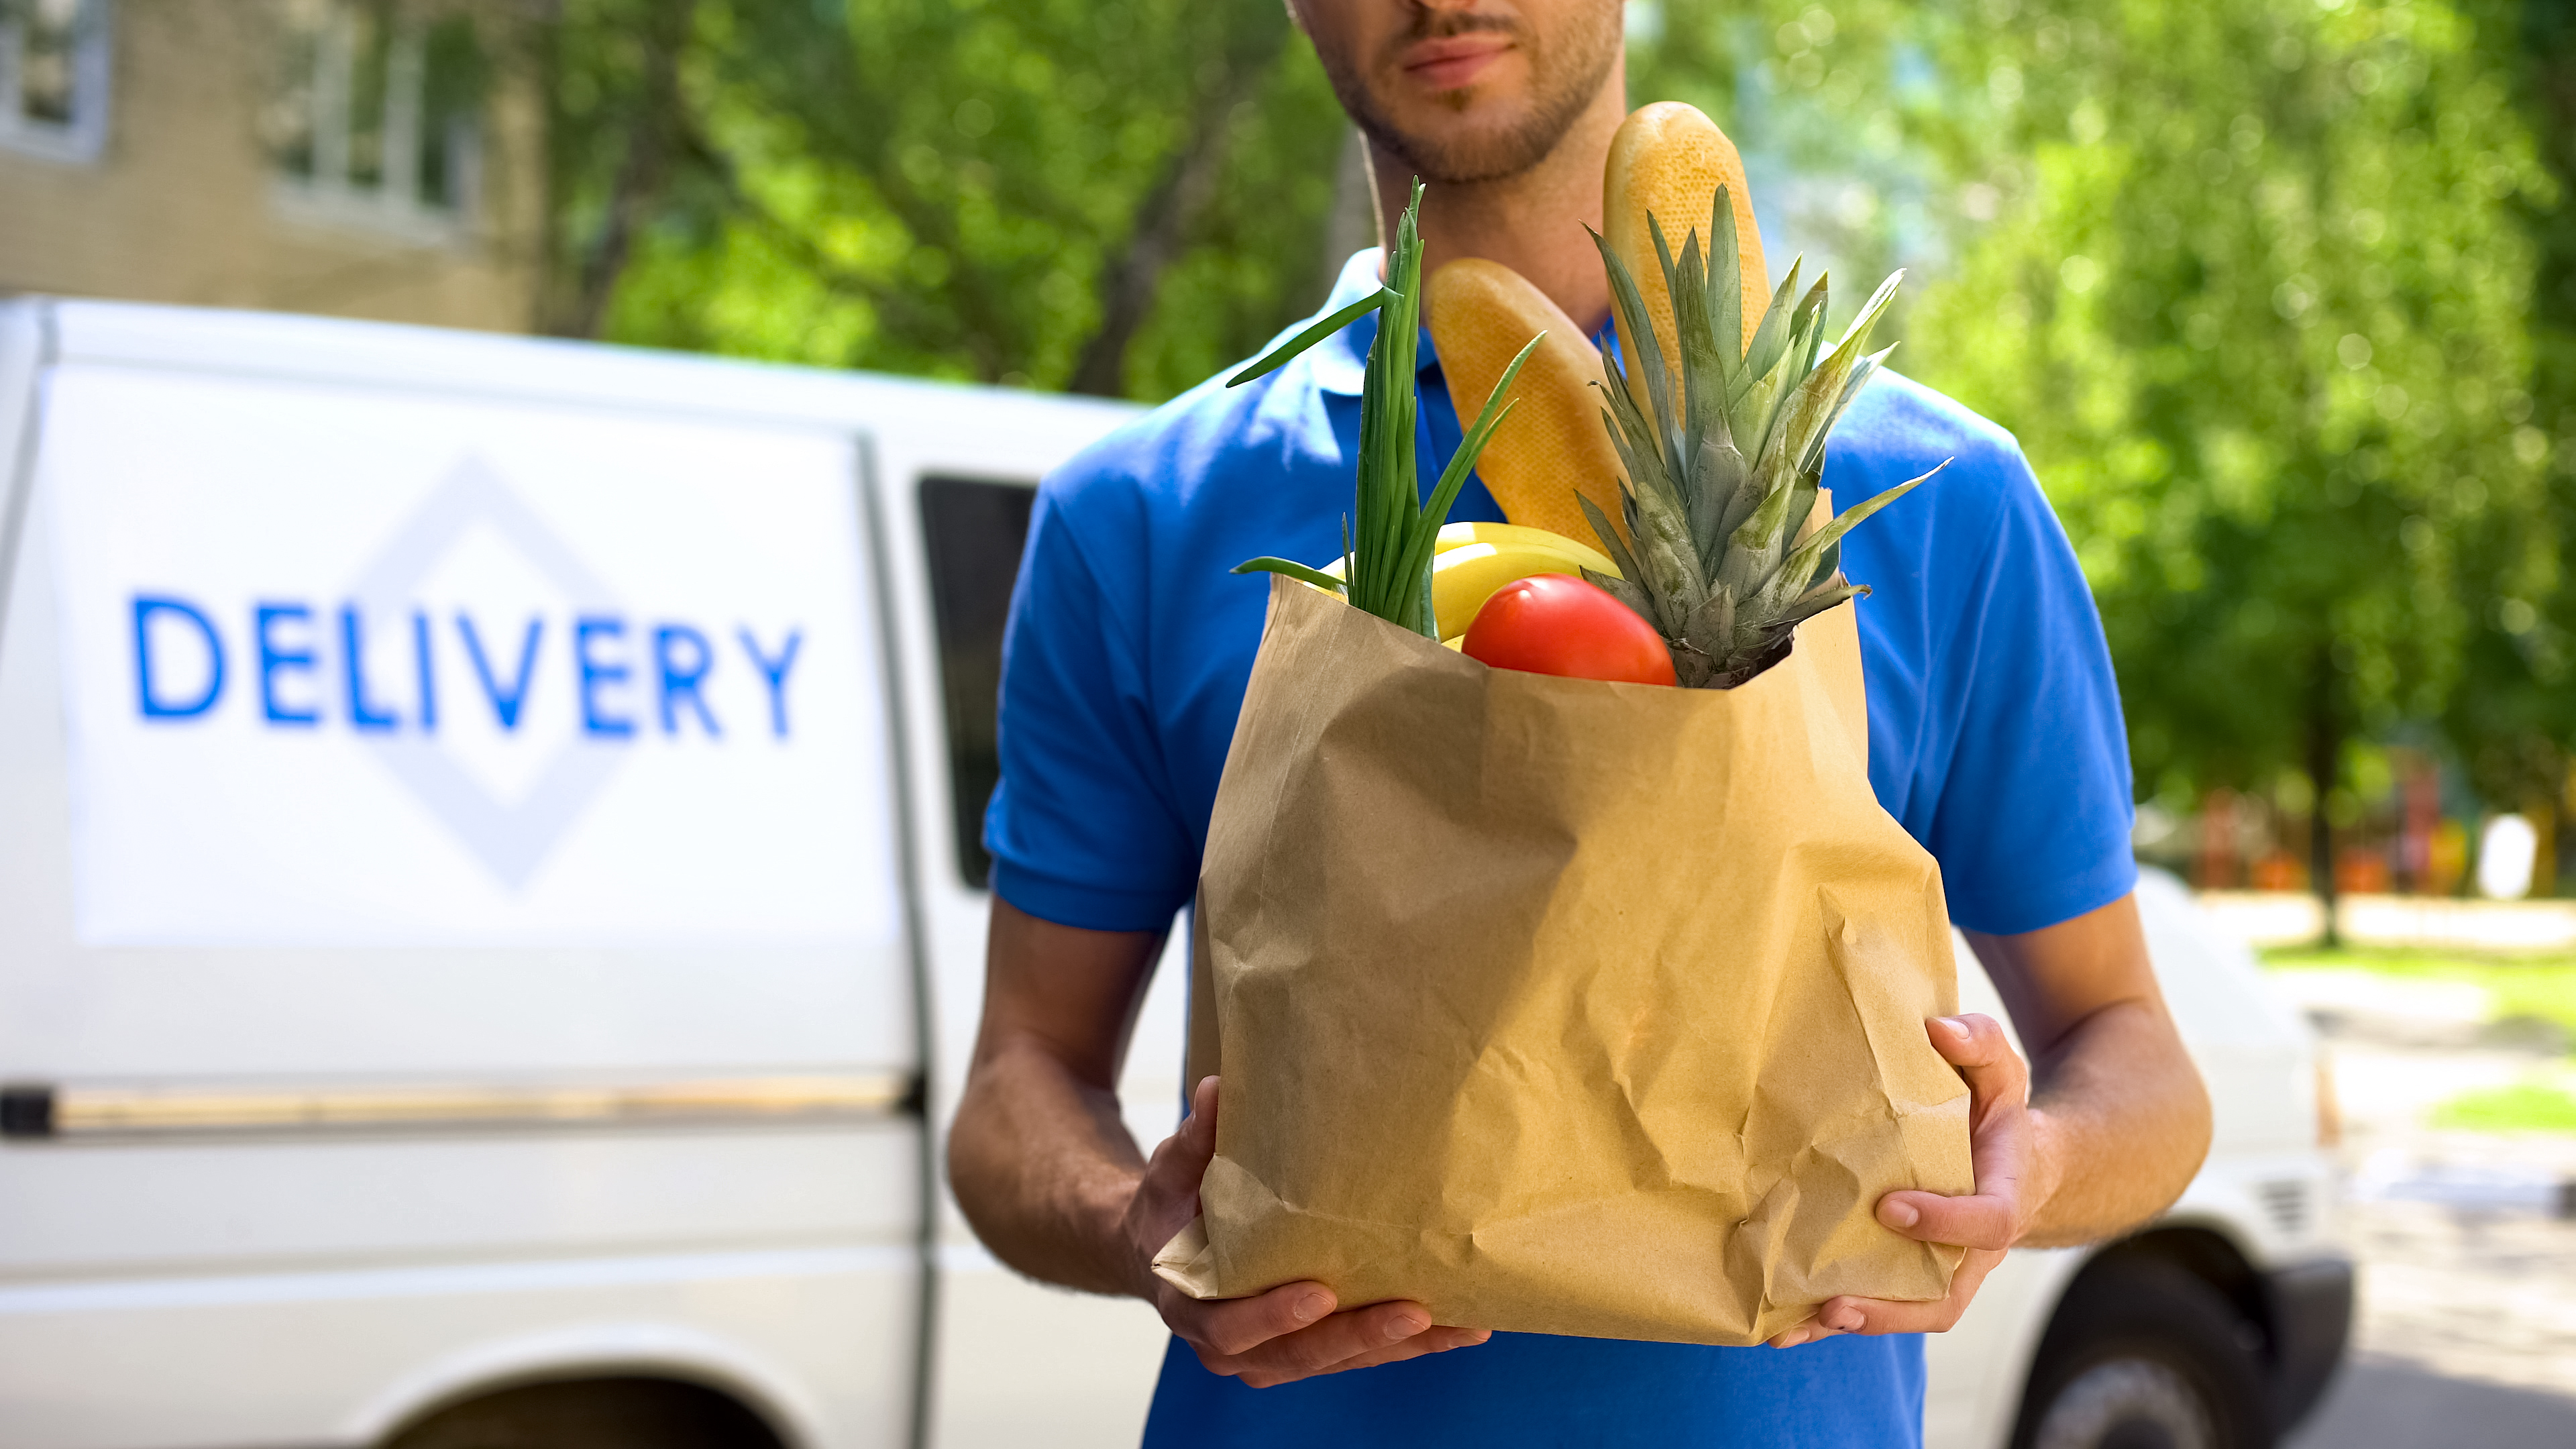 grocery delivery istock-1059113290.jpg